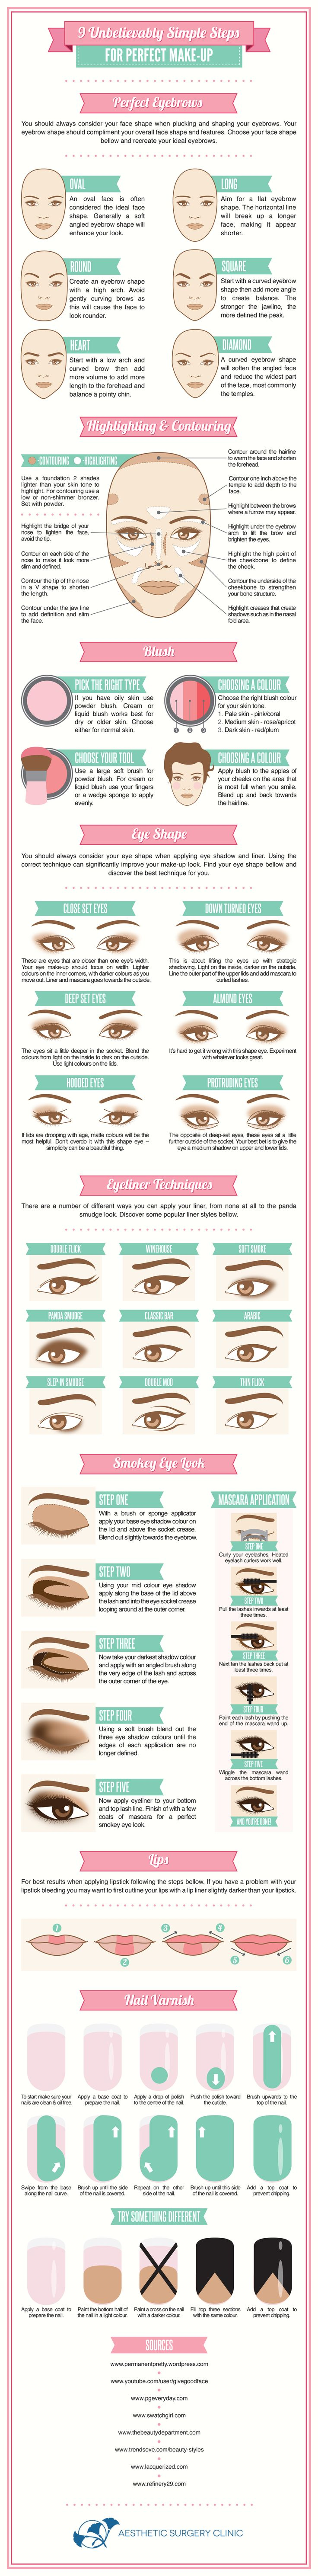 9 Unbelievably Simple Steps for Perfect Make-Up #Infographics #Image #POD â€...